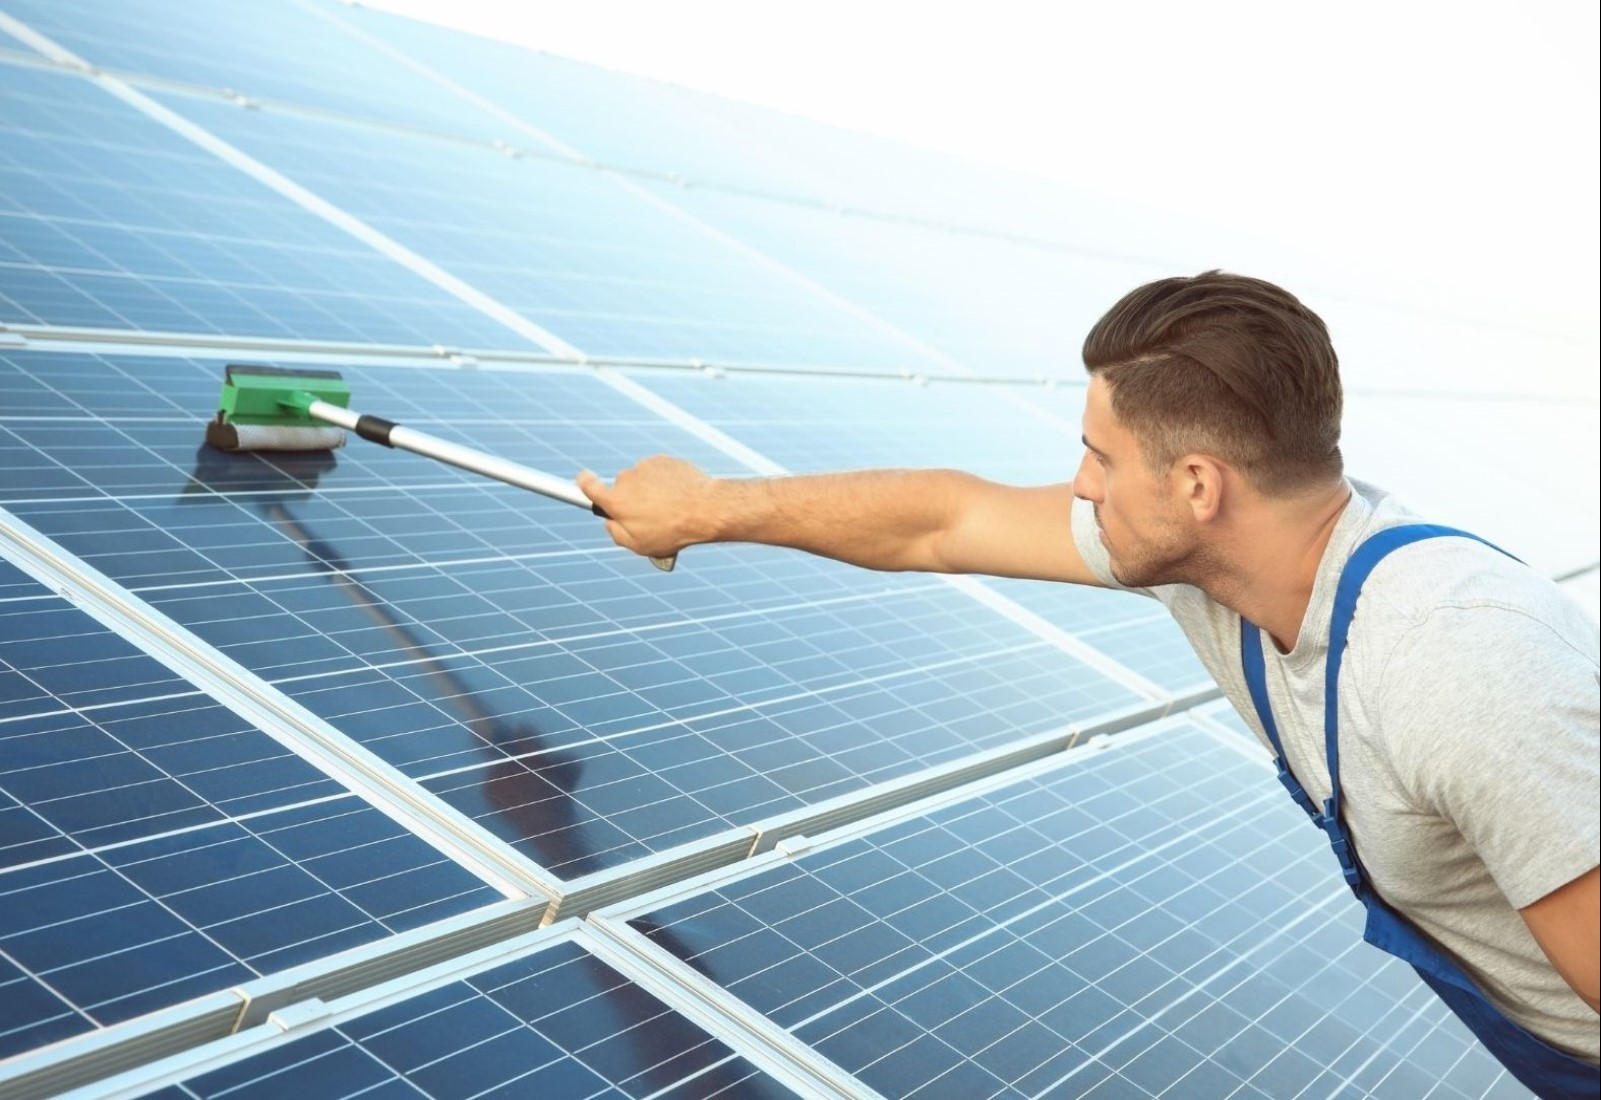 Commercial Building Washing Solar panel